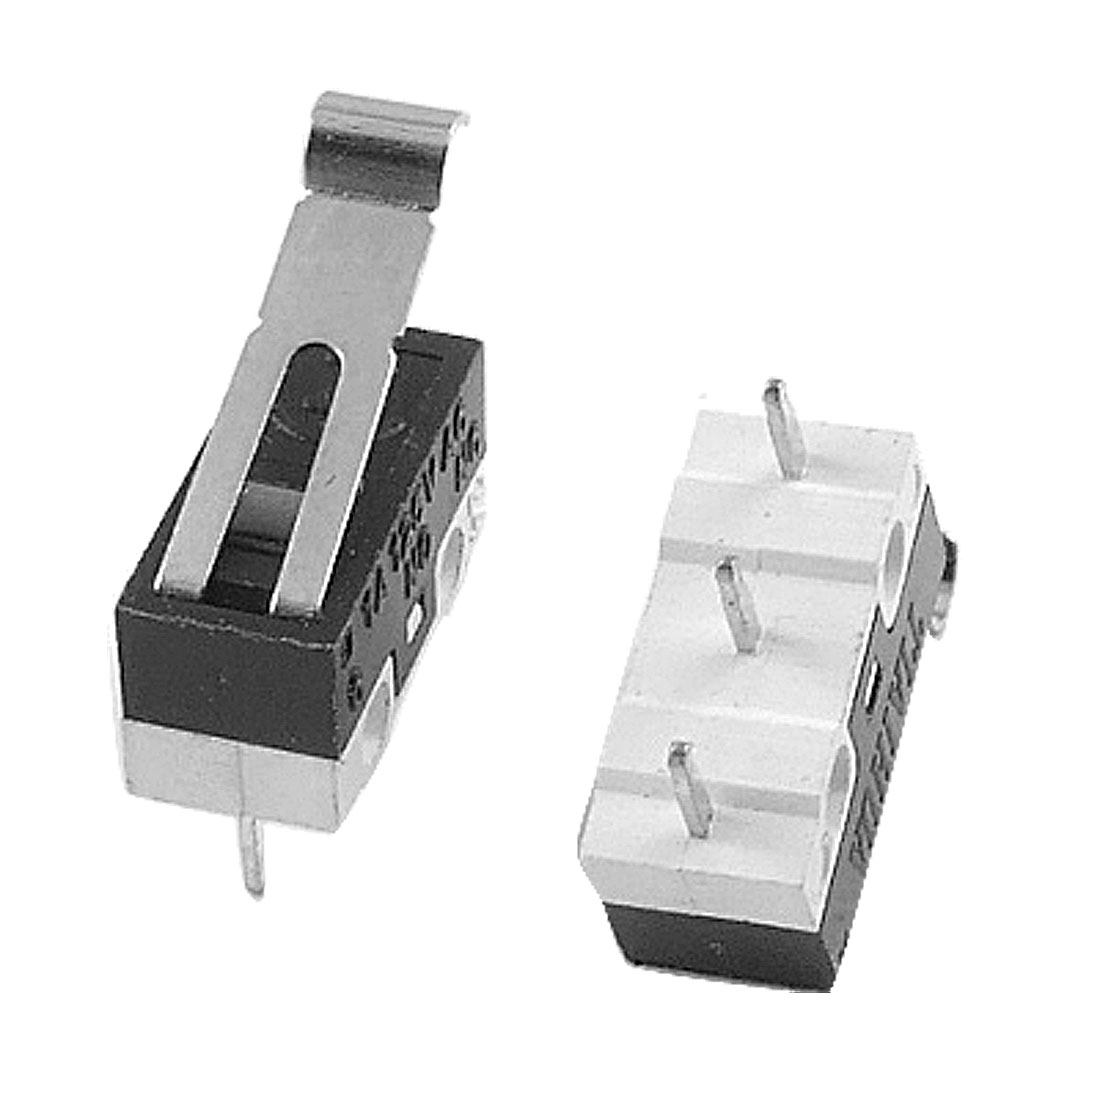 AC-125V-1A-SPDT-1NO-1NC-Momentary-Miniature-Micro-Switch-w-Hooked-Lever-10-Pcs